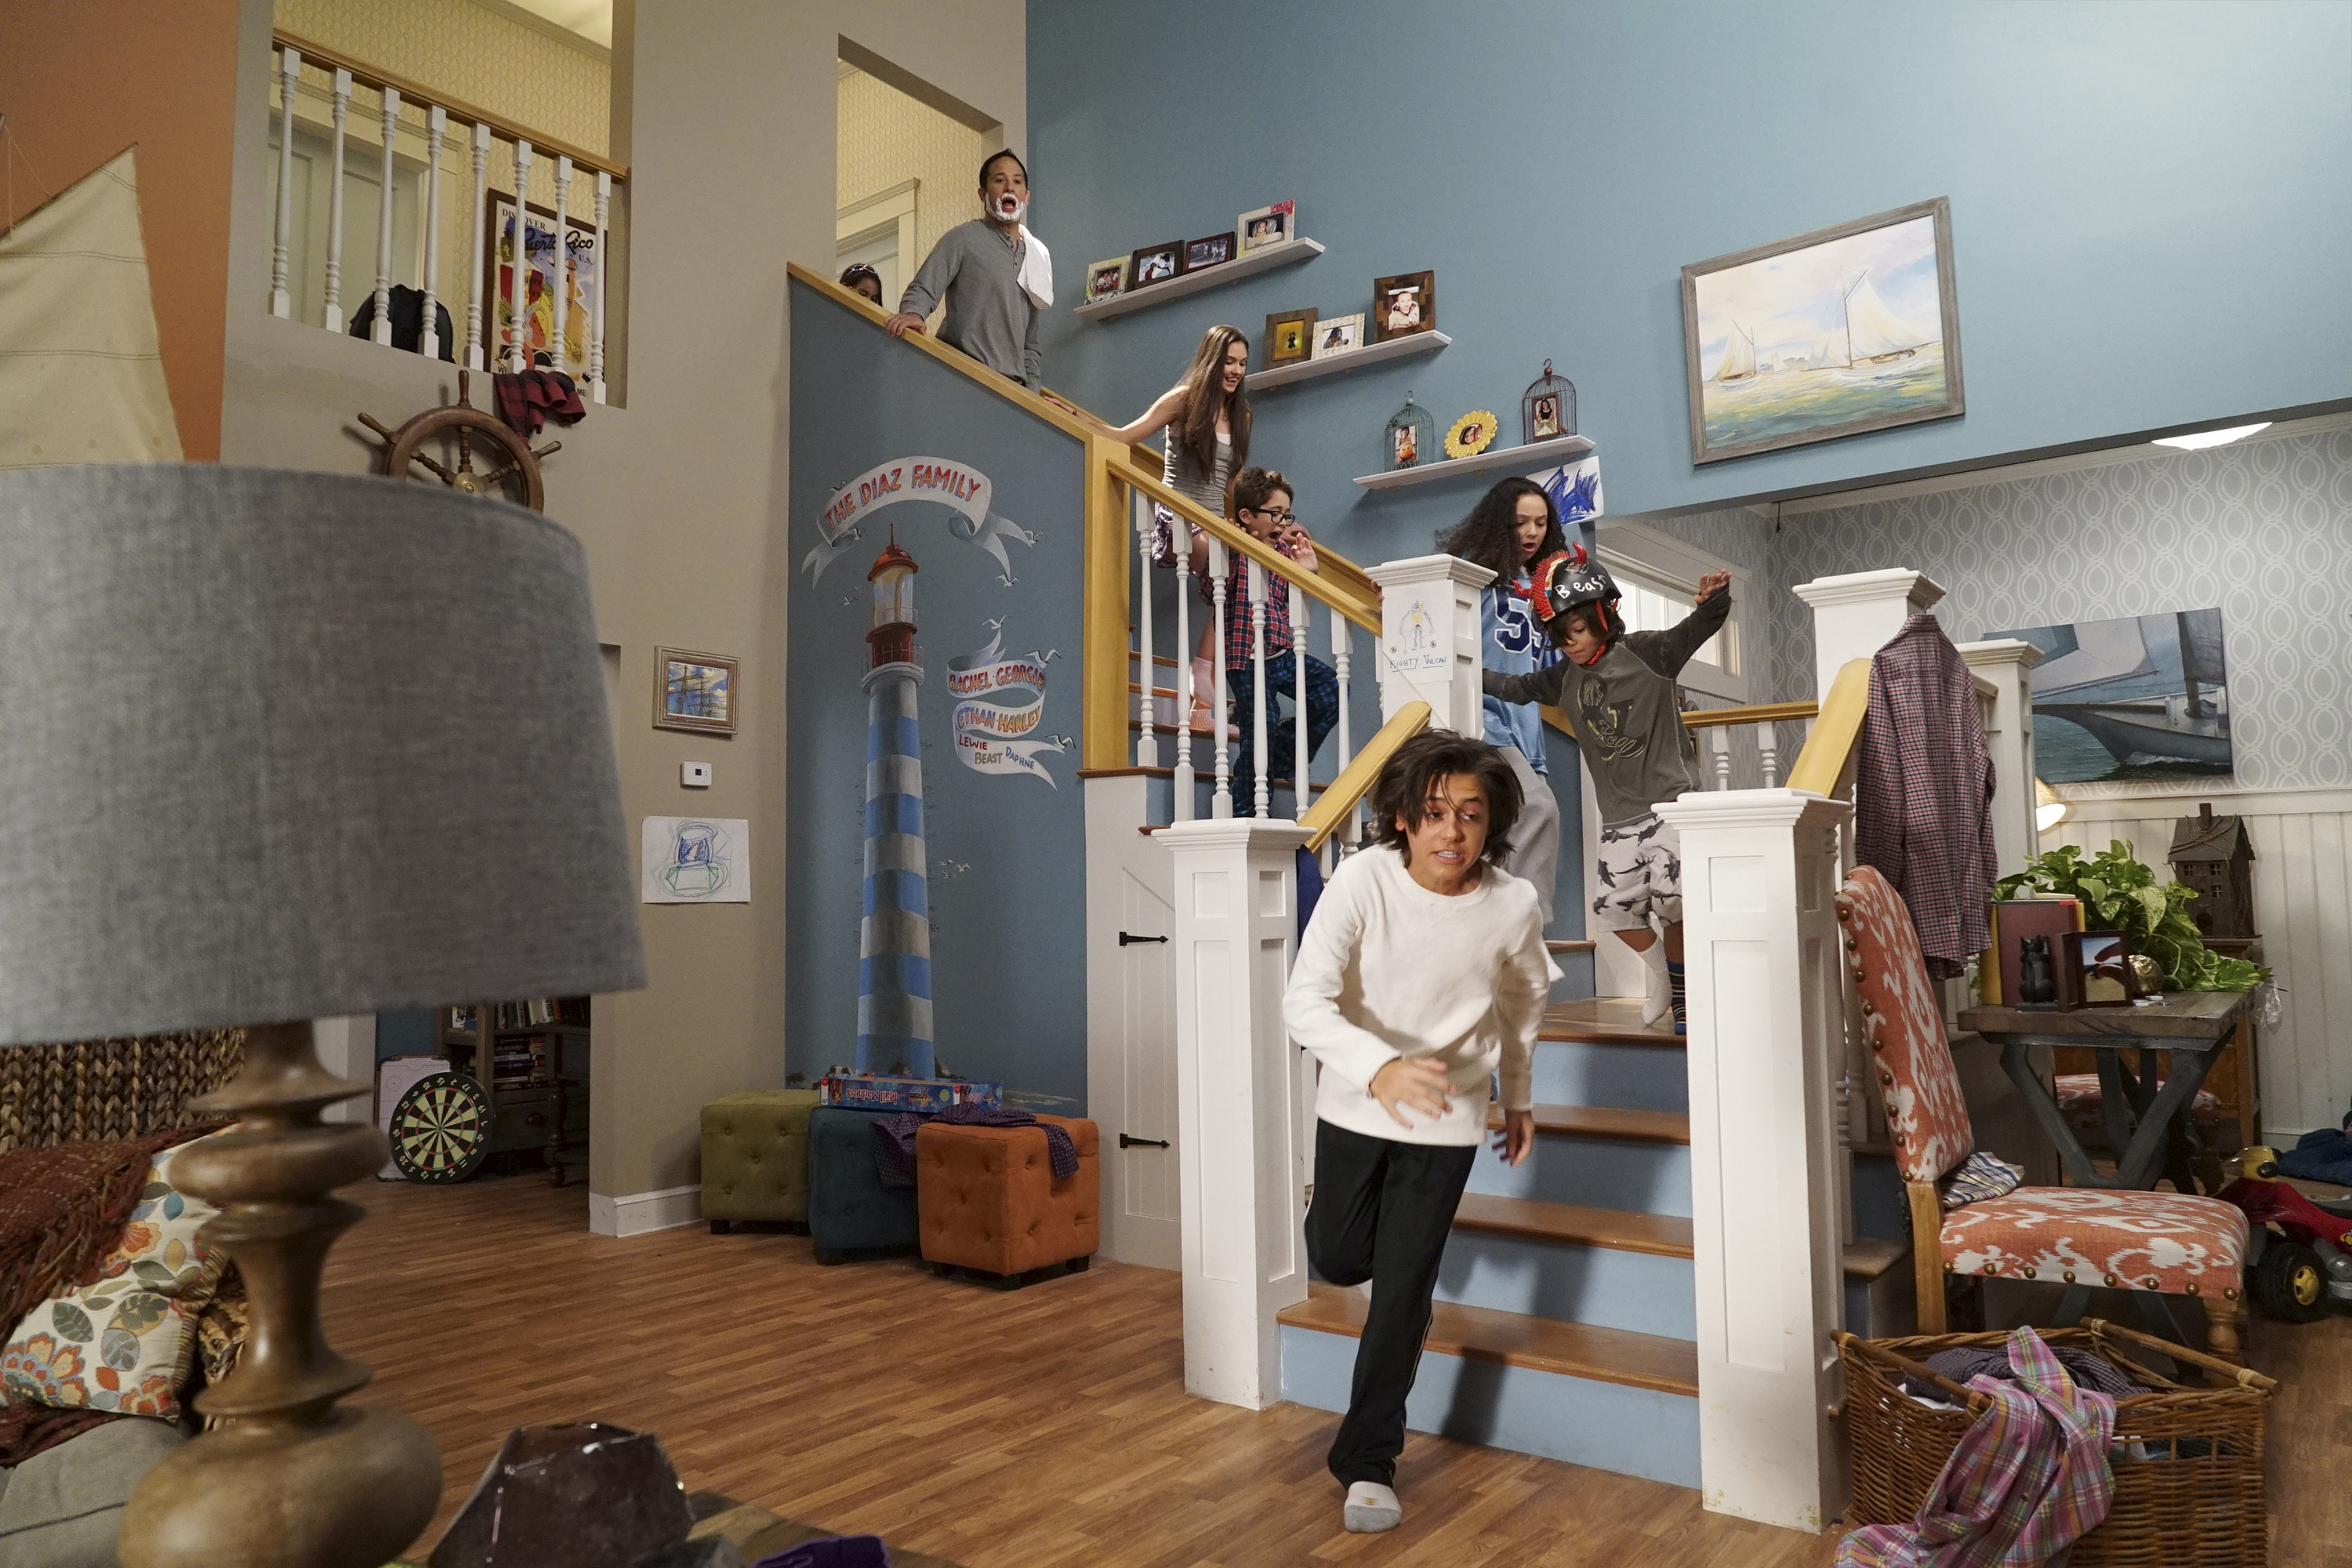 """STUCK IN THE MIDDLE - """"Stuck in the Middle"""" - Avid inventor Harley is all set to accept a community award, but must first devise a way to get her family out of the house and to the ceremony on time. This episode of """"Stuck in the Middle"""" airs Sunday, February 14 (8:45 - 9:15 PM EST), on Disney Channel. (Disney Channel/Eric McCandless) ARIANA GREENBLATT, JOE NIEVES, RONNI HAWK, NICOLAS BECHTEL, KAYLA MAISONET, MALACHI BARTON, ISAAK PRESLEY"""